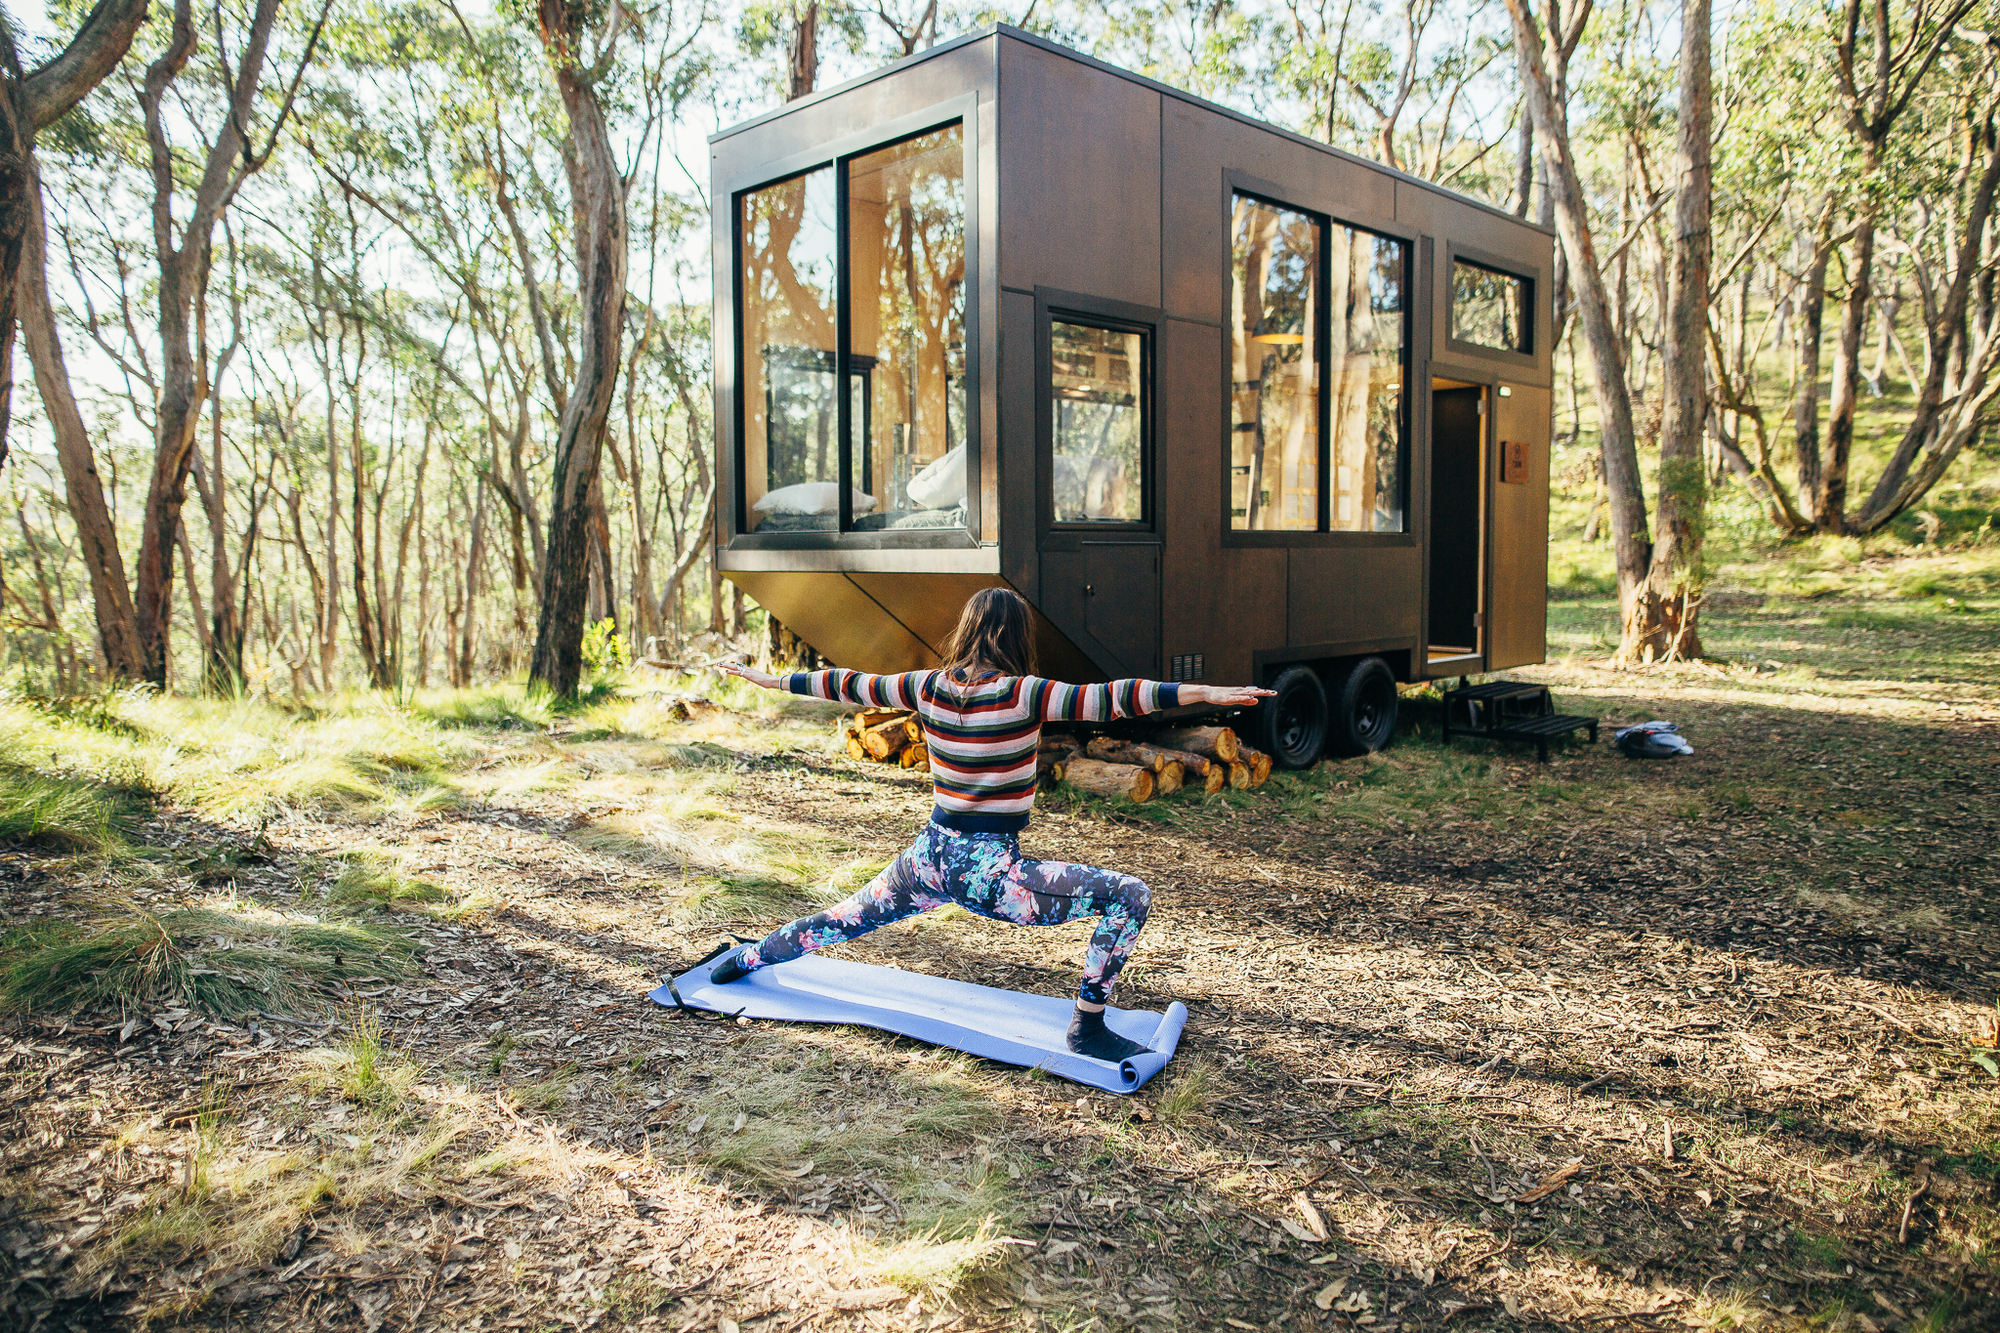 Tiny Houses on Wheels: Flexibility and Mobility in Small Scale Architecture